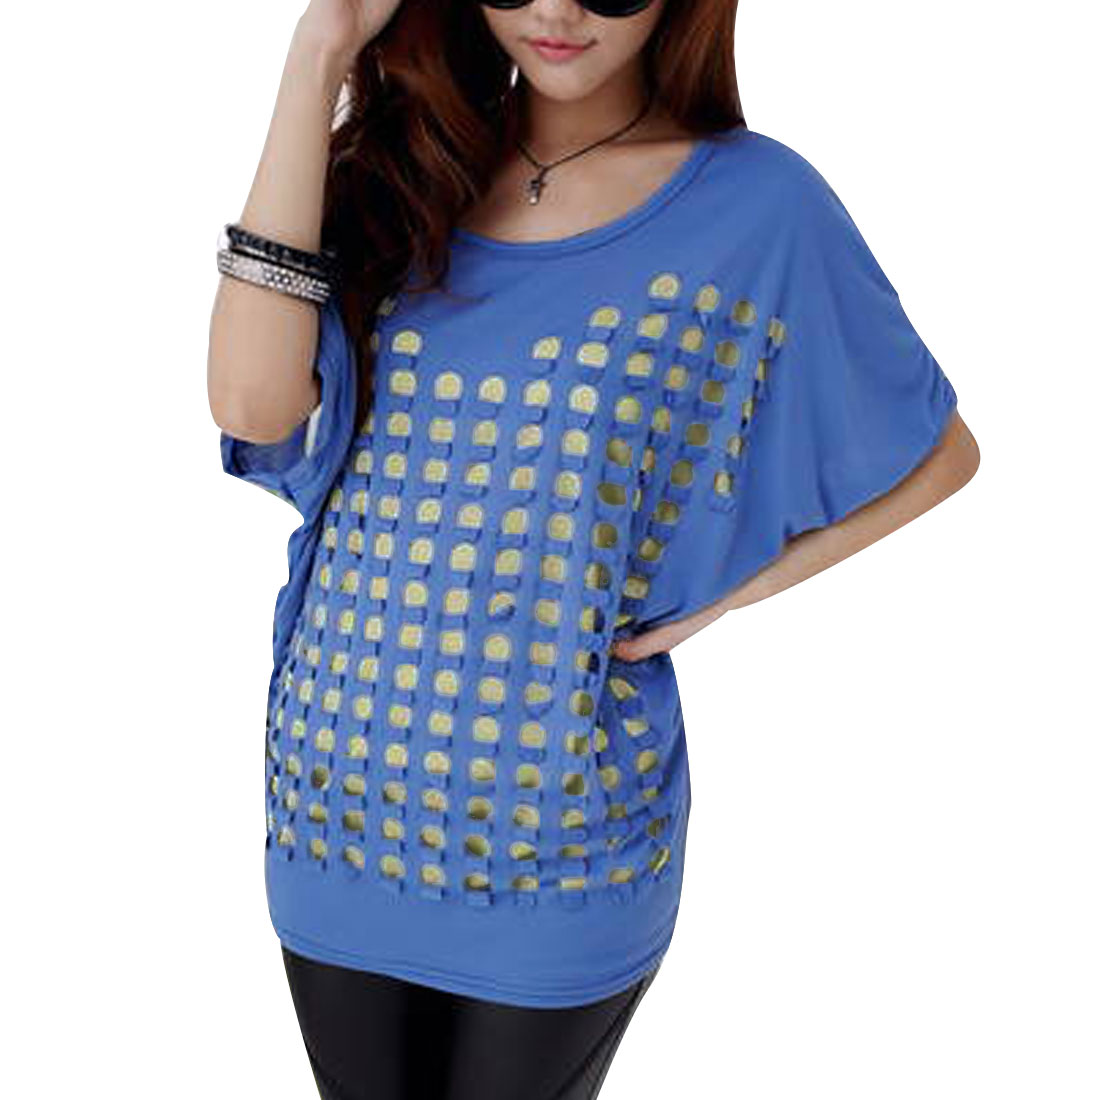 Lady Solid Color Batwing Splice Short-sleeved Tops Blouses Blue M